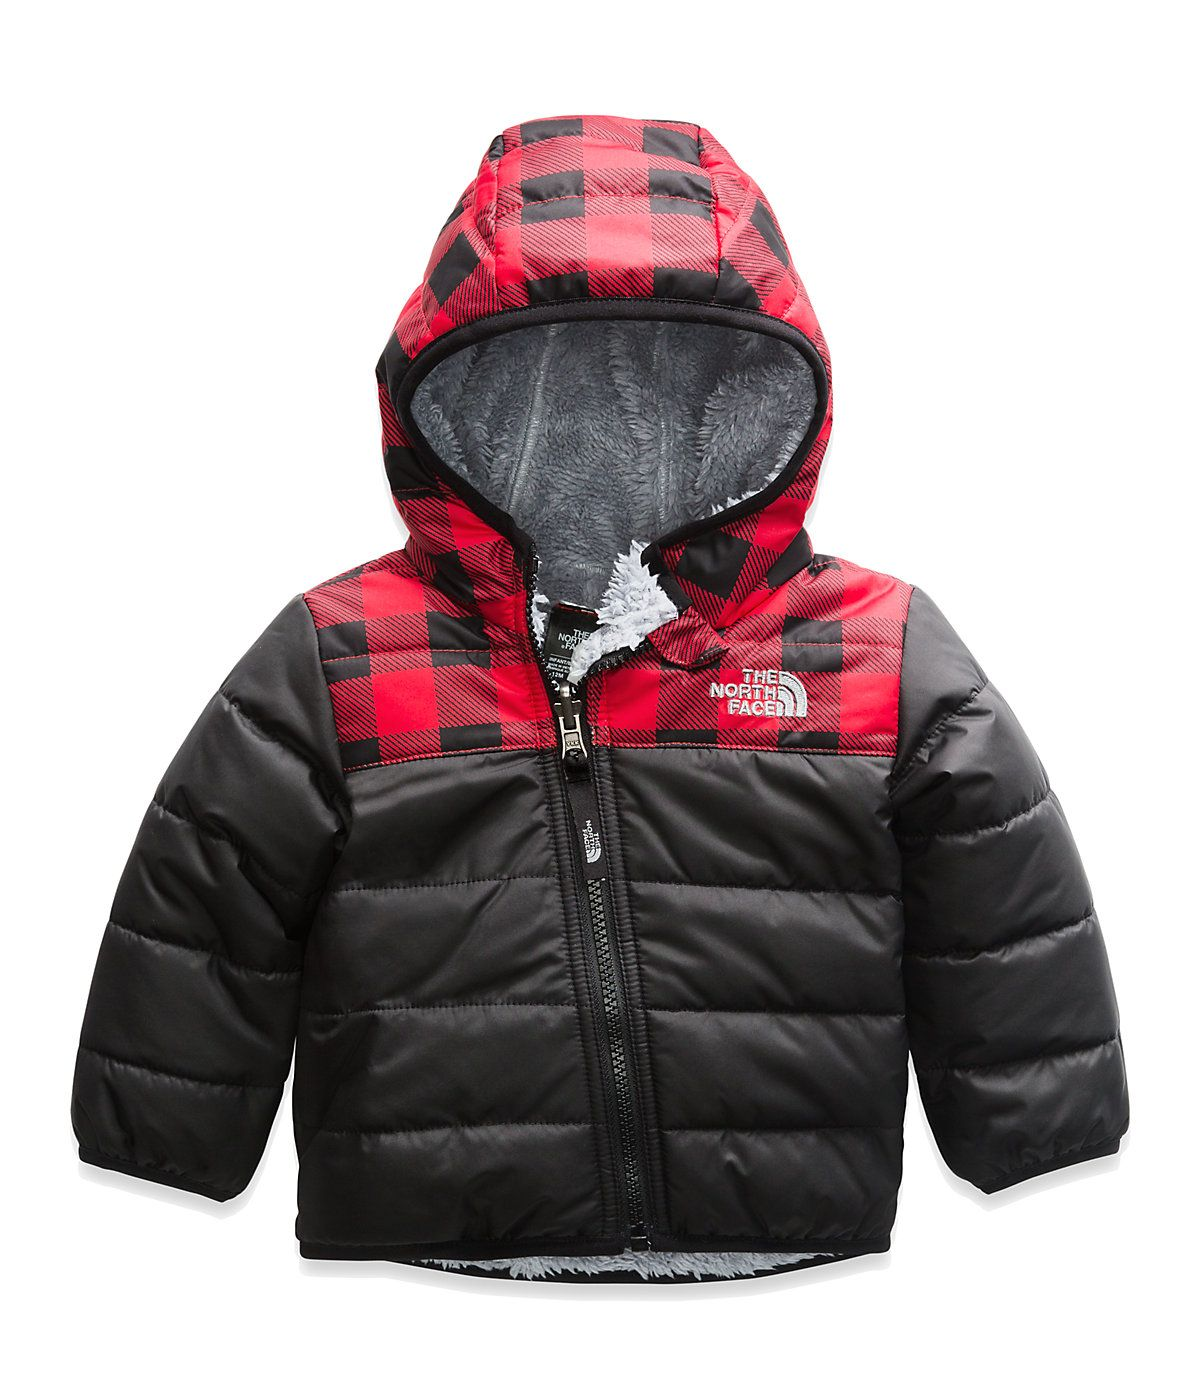 c263fbbfb The North Face Infant Reversible Mount Chimborazo Hoodie Sweatshirt ...